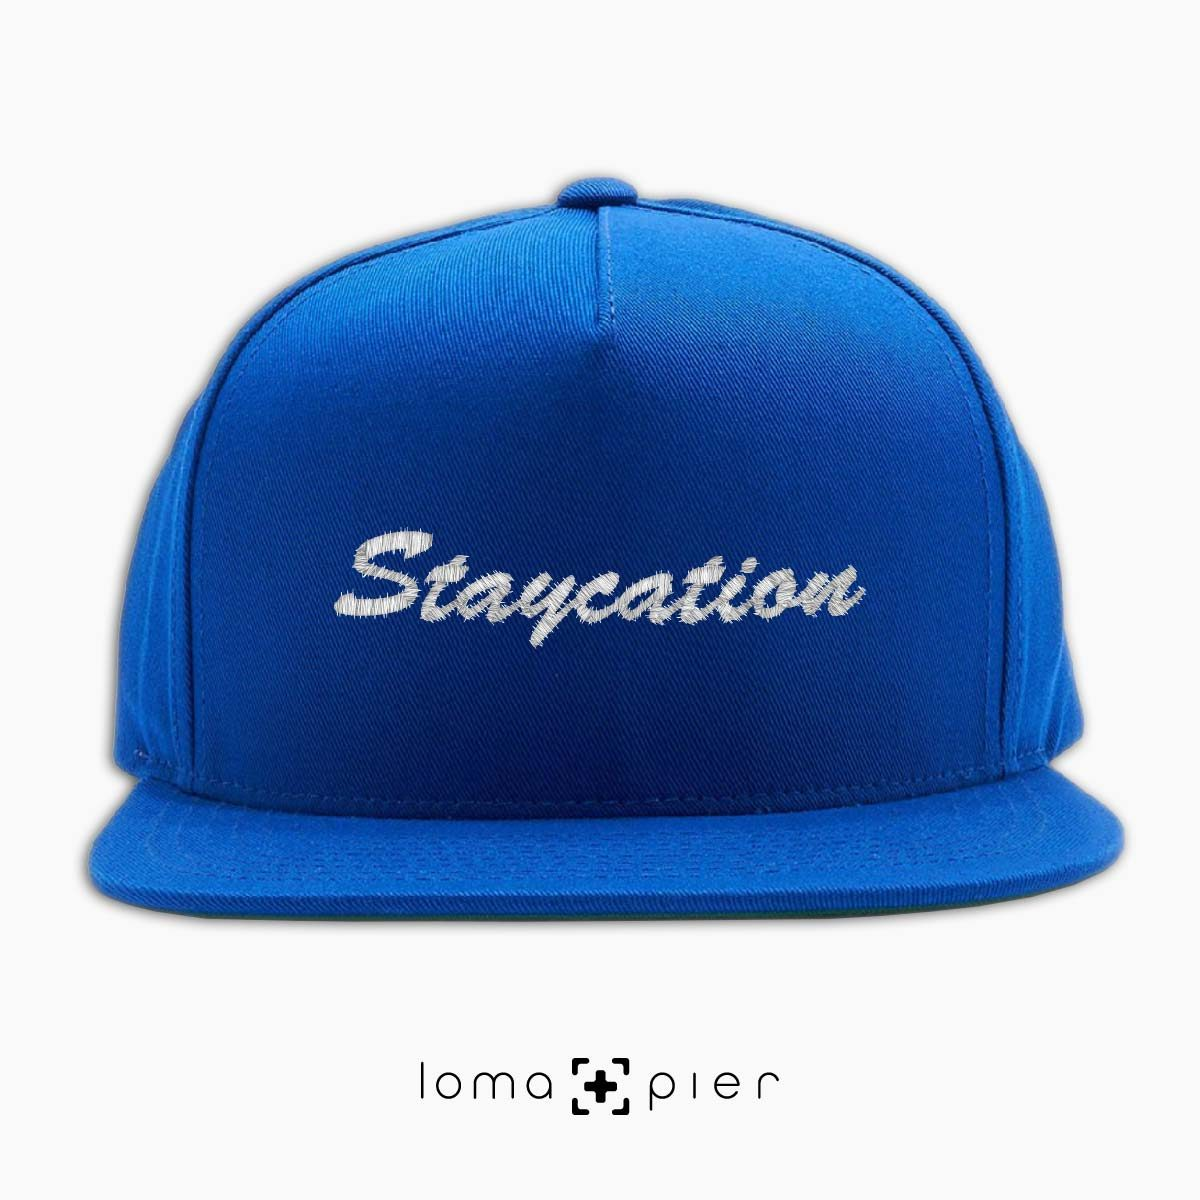 STAYCATION introvert saying embroidered on a royal blue classic snapback hat with white thread by loma+pier hat store